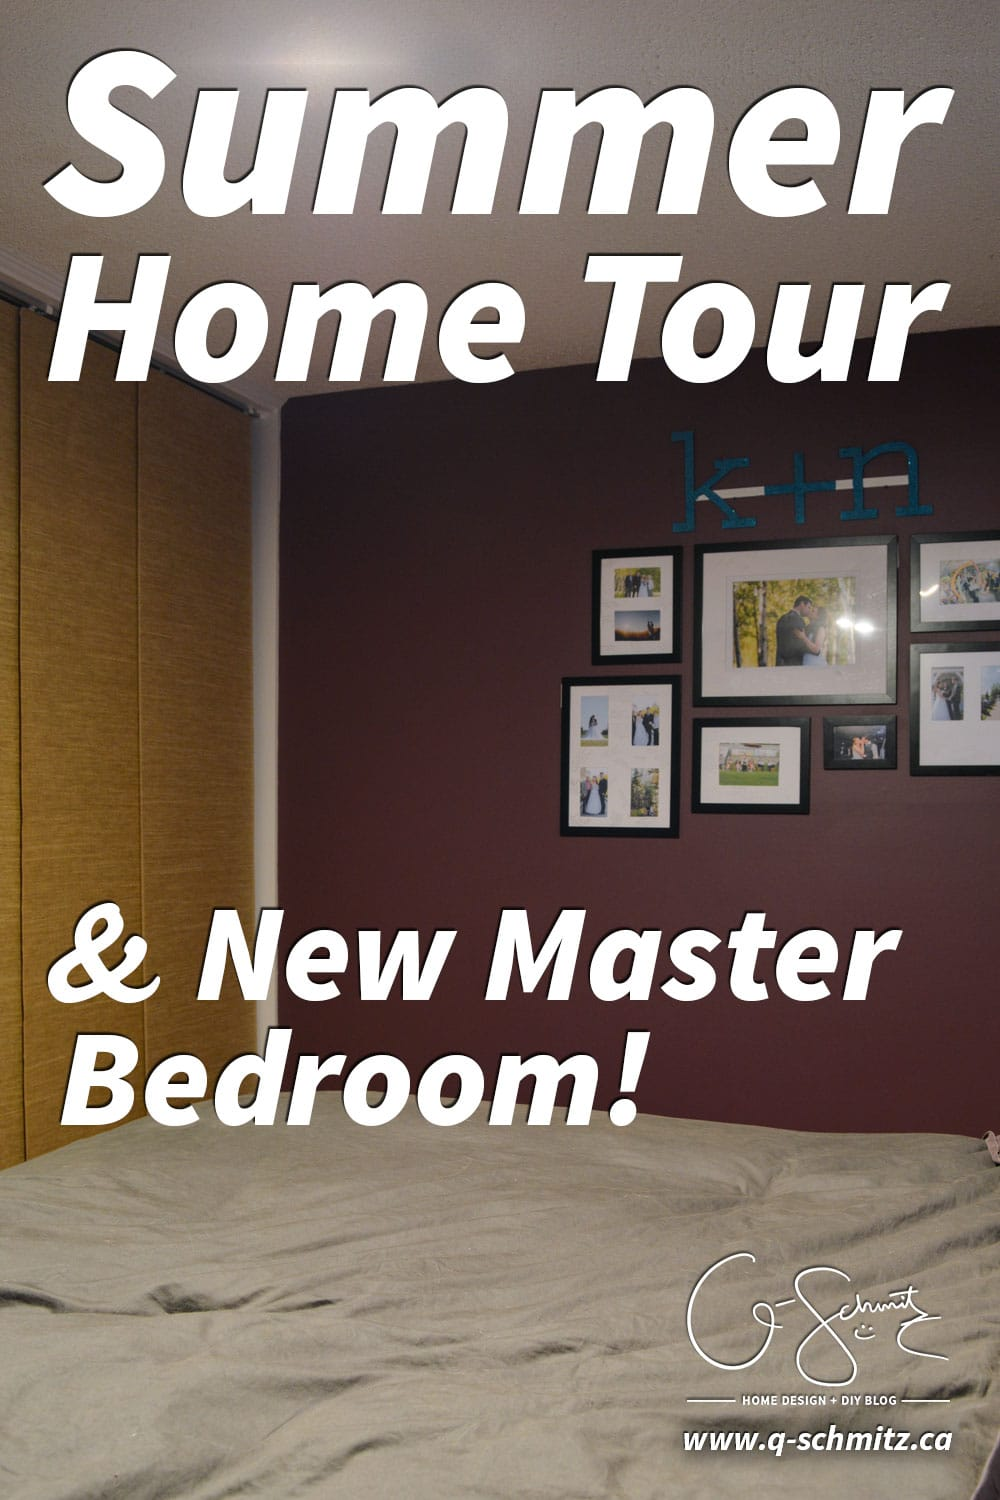 Today I'll be sharing photos of some different areas of my house, and most excitingly I'll be revealing our new Master Bedroom paint colour. Part of the summer home tour hosted by Green with Decor